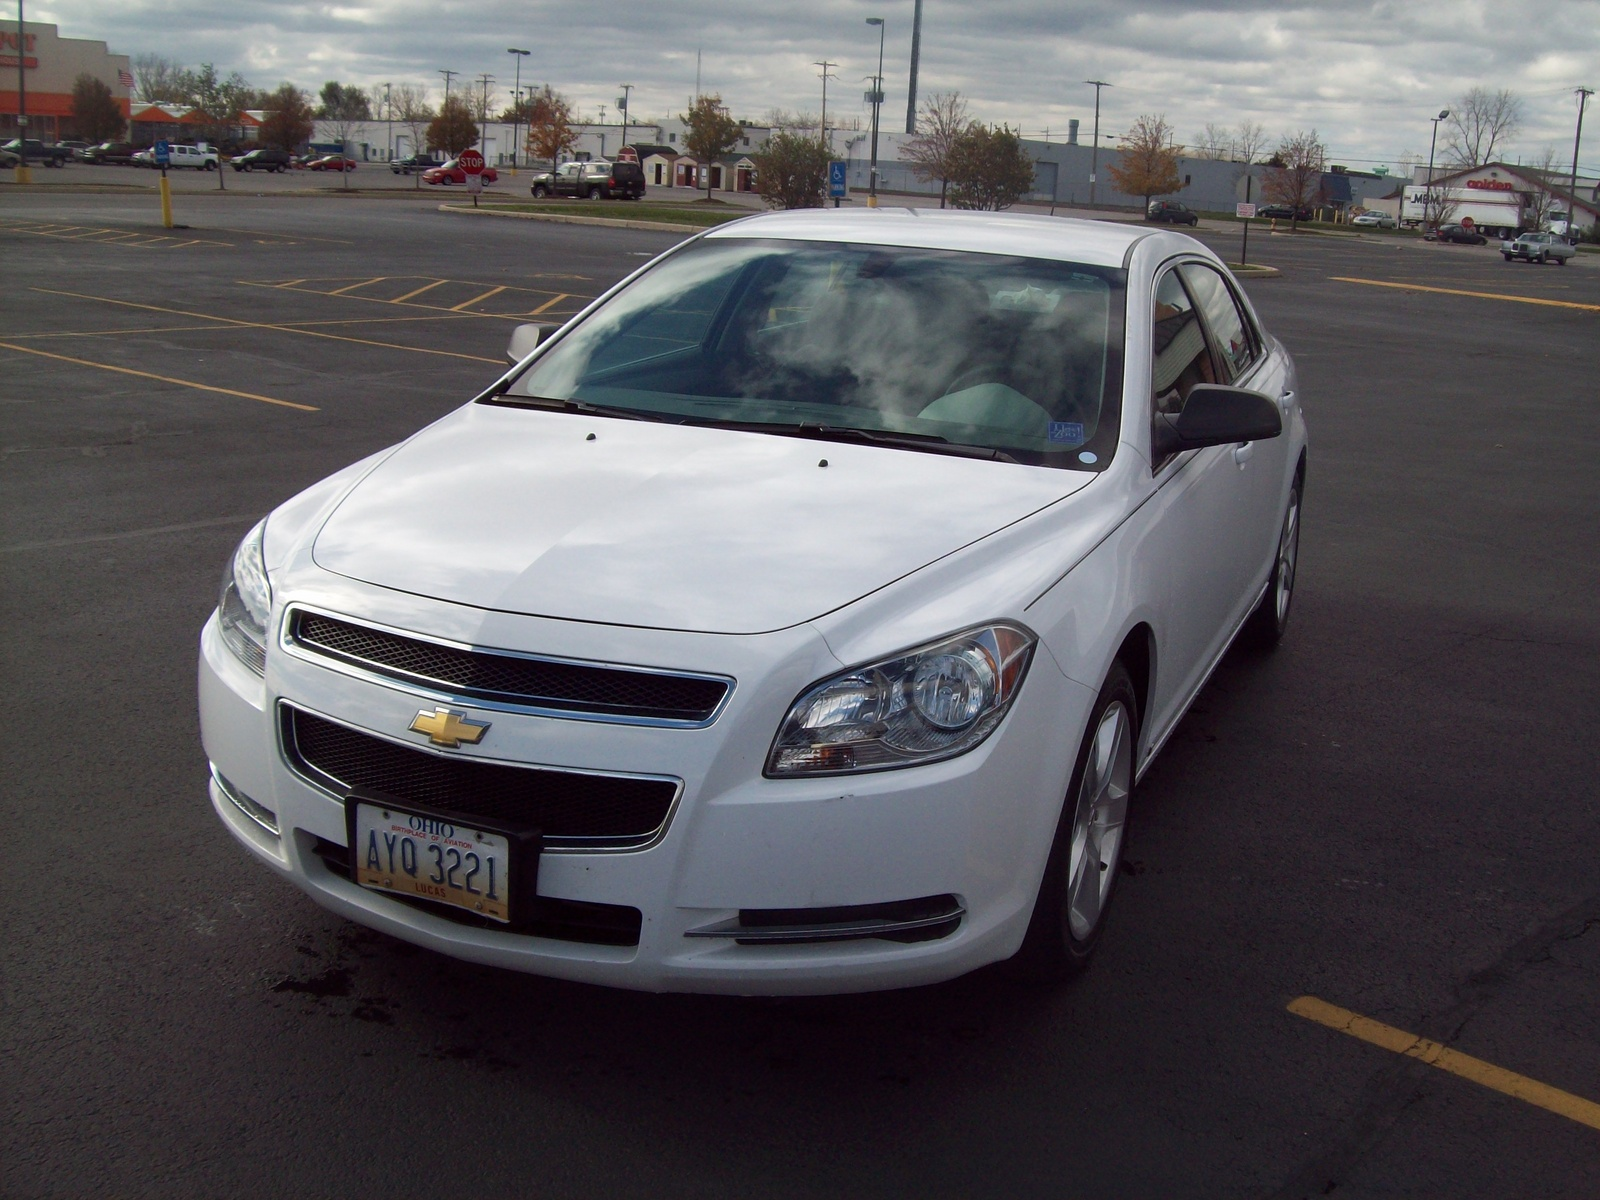 2009 chevrolet malibu pictures cargurus. Black Bedroom Furniture Sets. Home Design Ideas